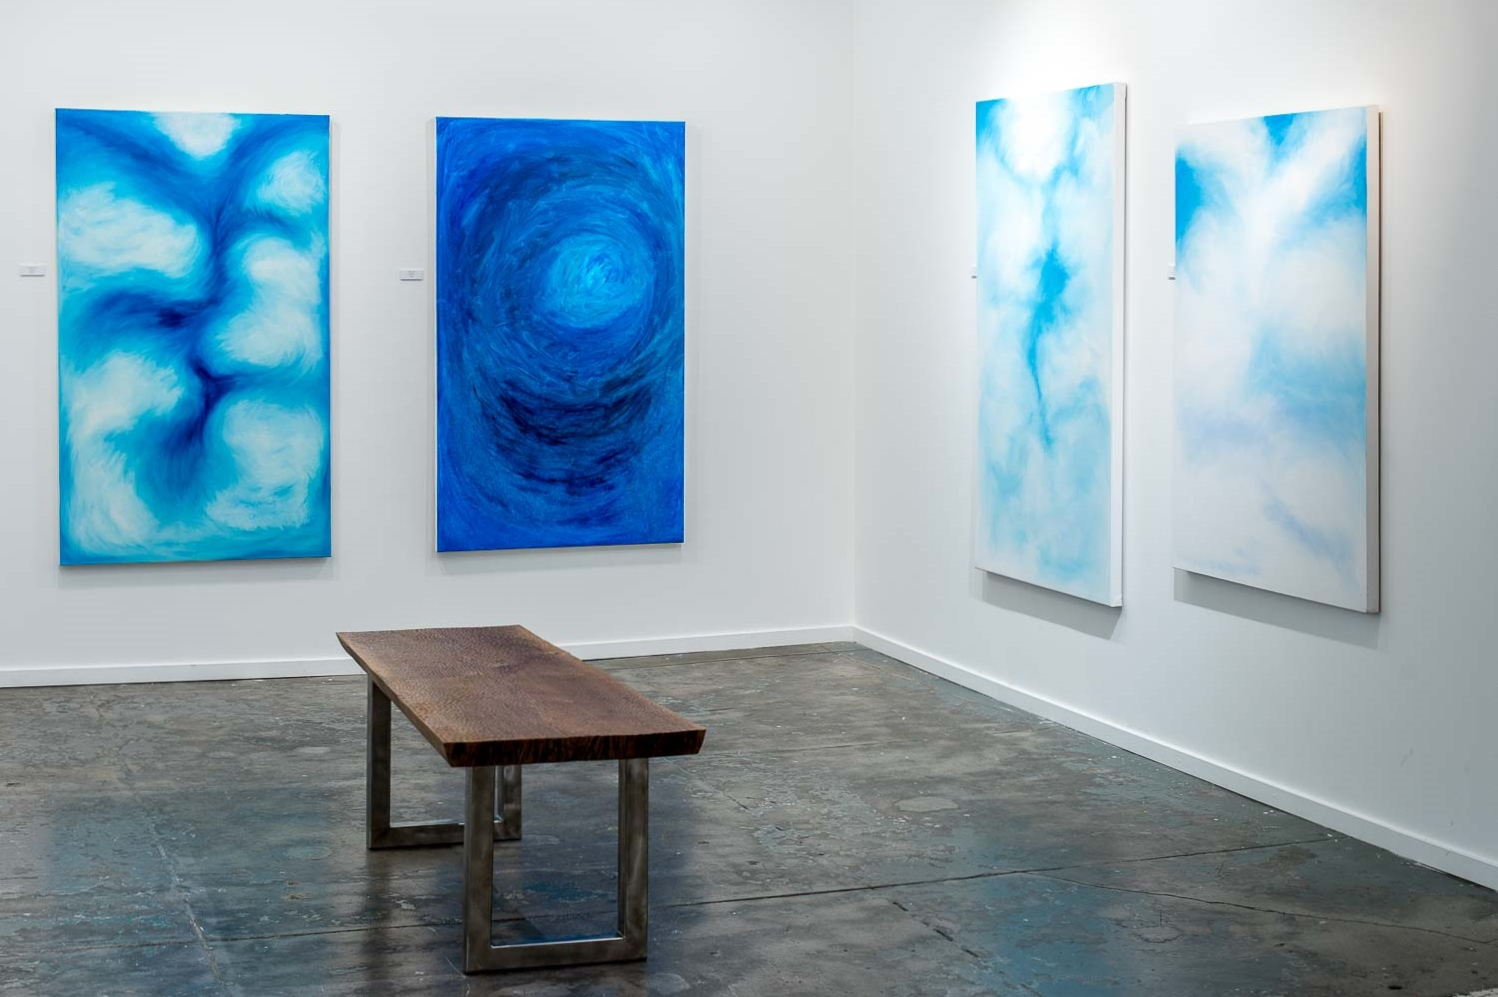 Reappearance - Shift Gallery, 2019